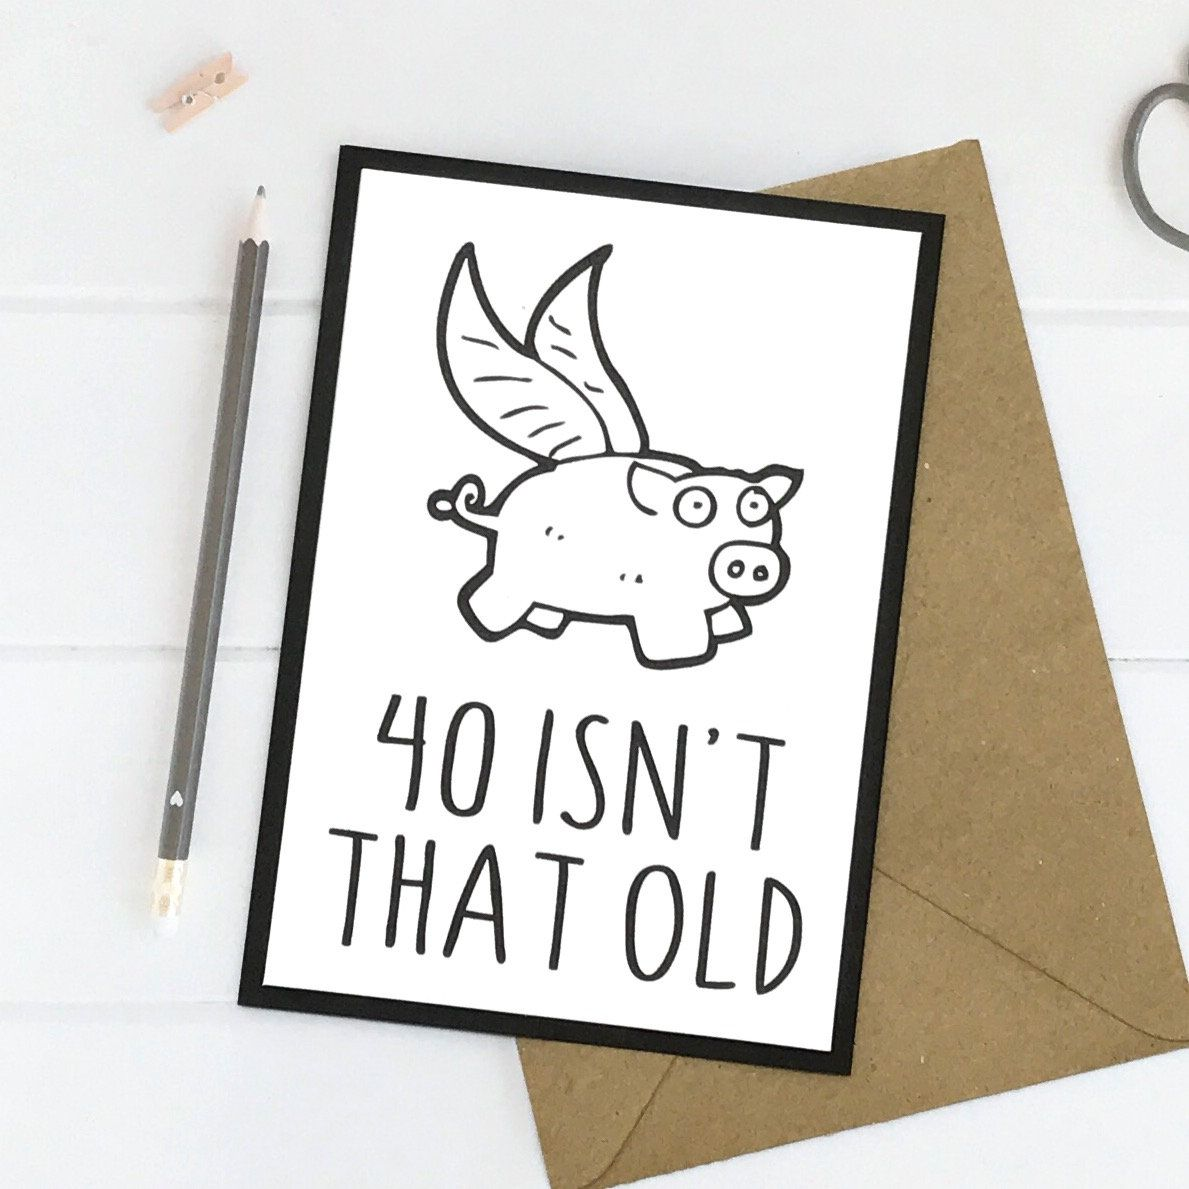 40th Birthday Card 40th Birthday 40th Birthday Gift Etsy 50th Birthday Cards 40th Birthday Cards 40th Birthday Gifts